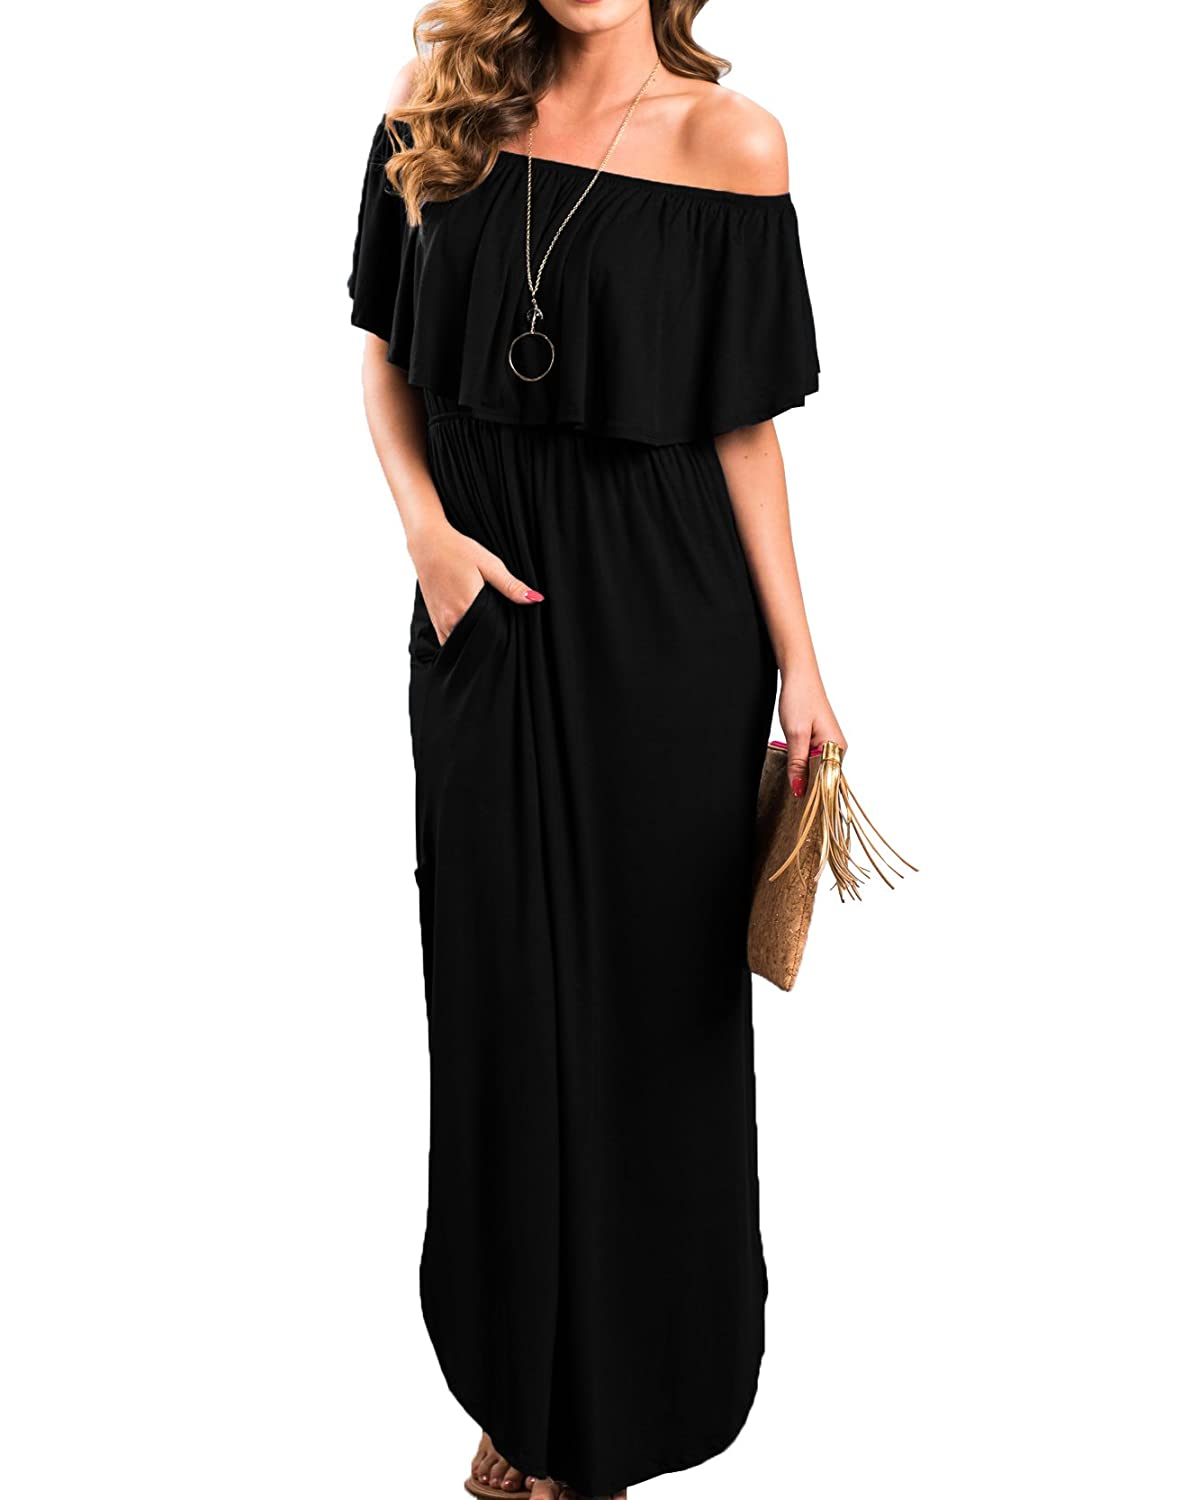 19405e8f75c Top 10 wholesale Multi Print Maxi Dress - Chinabrands.com